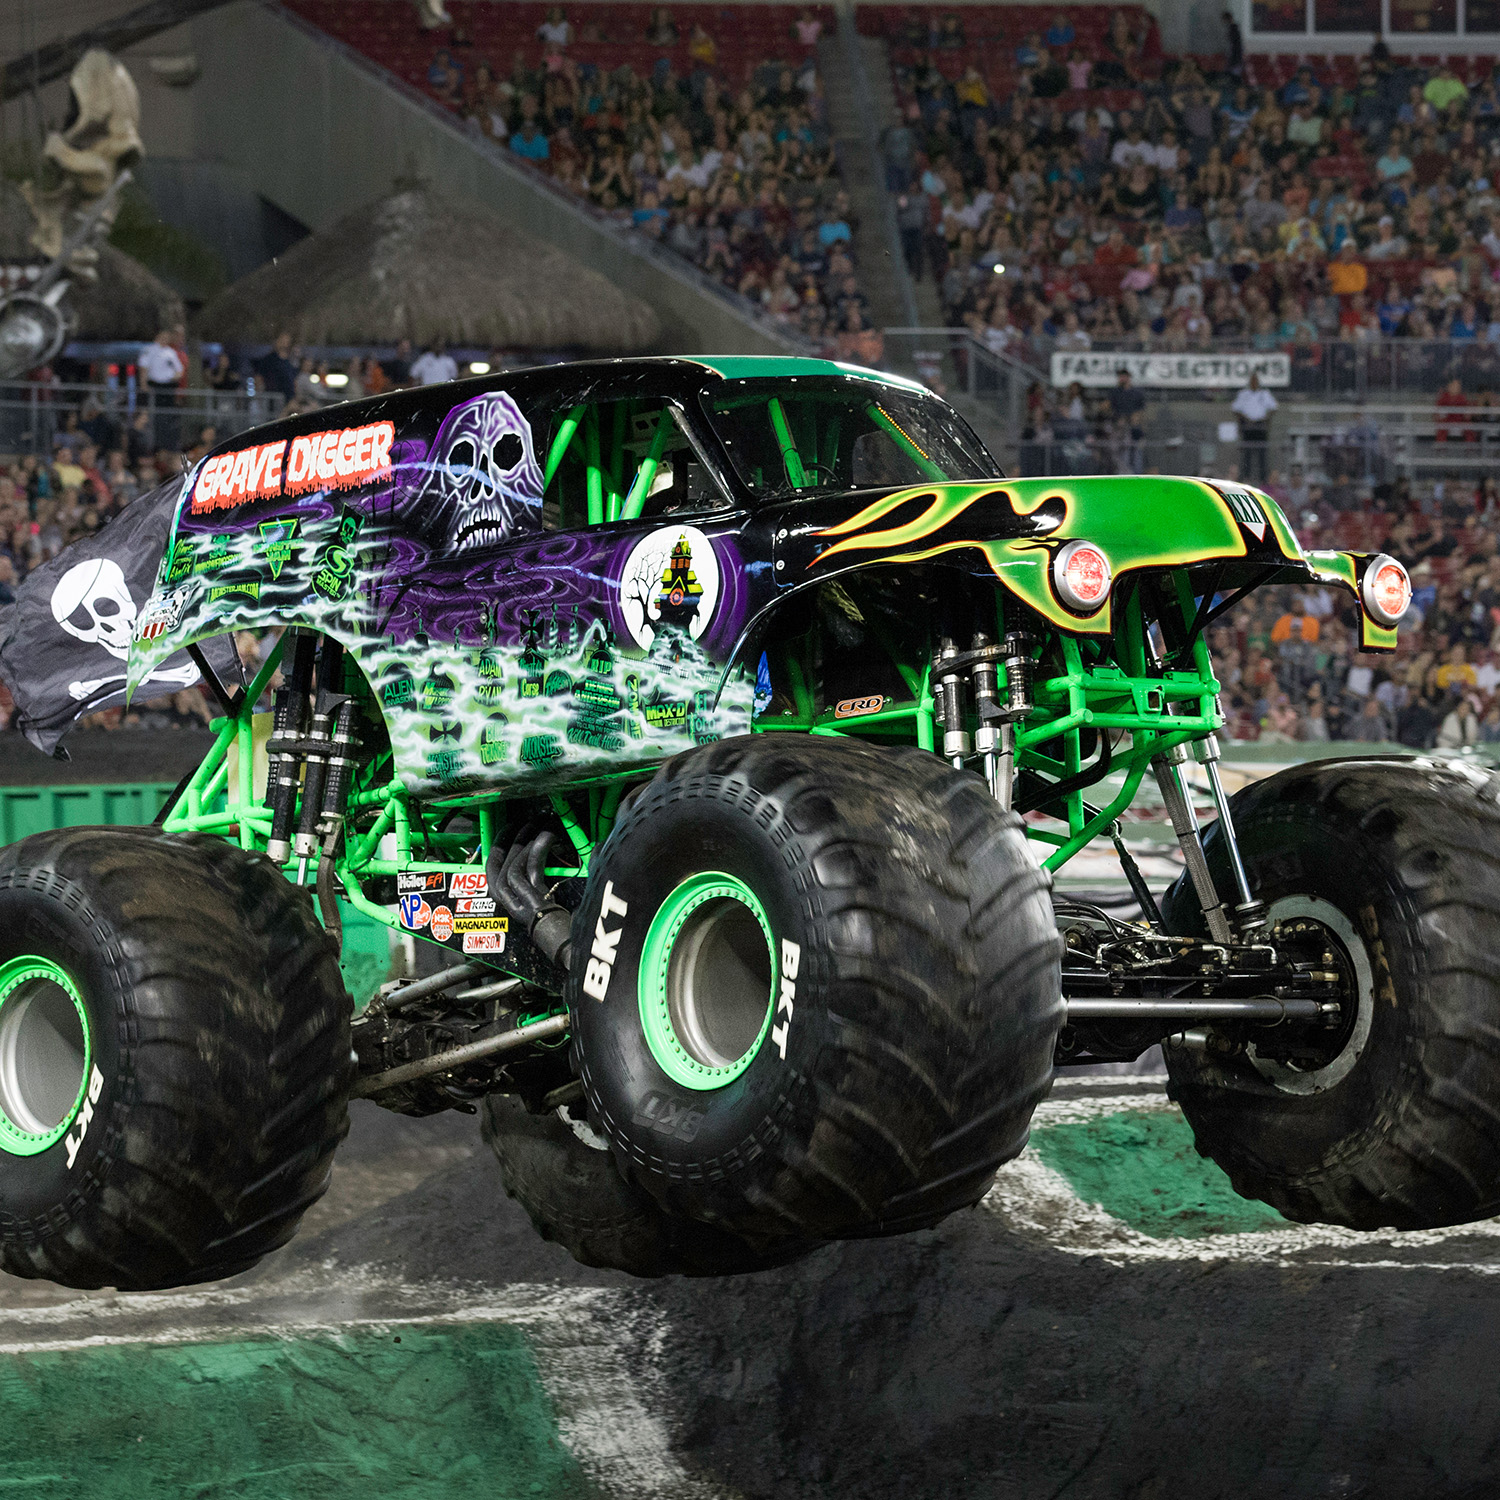 Just like a real monster truck